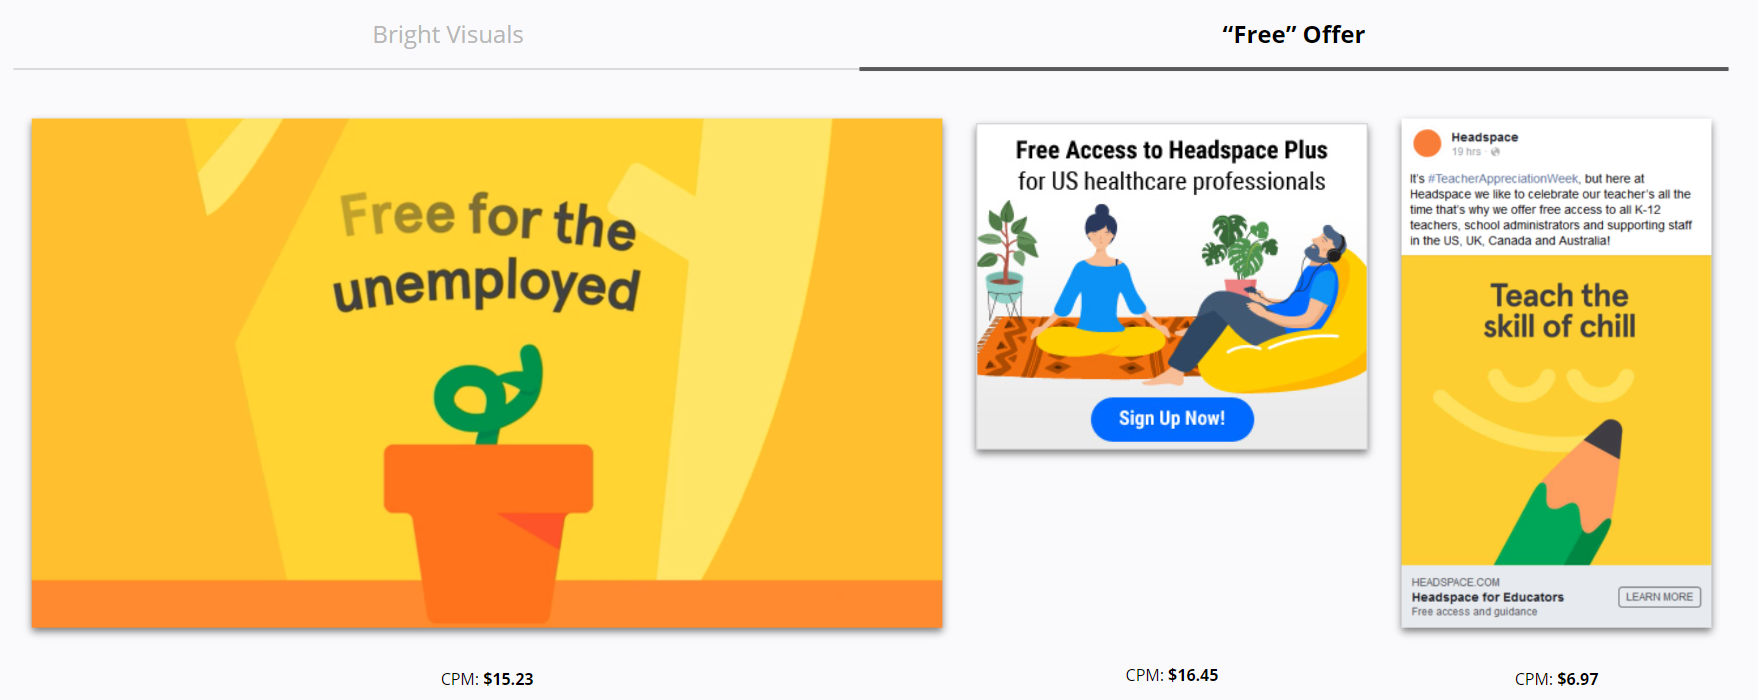 Headspace - Free Offer Ads